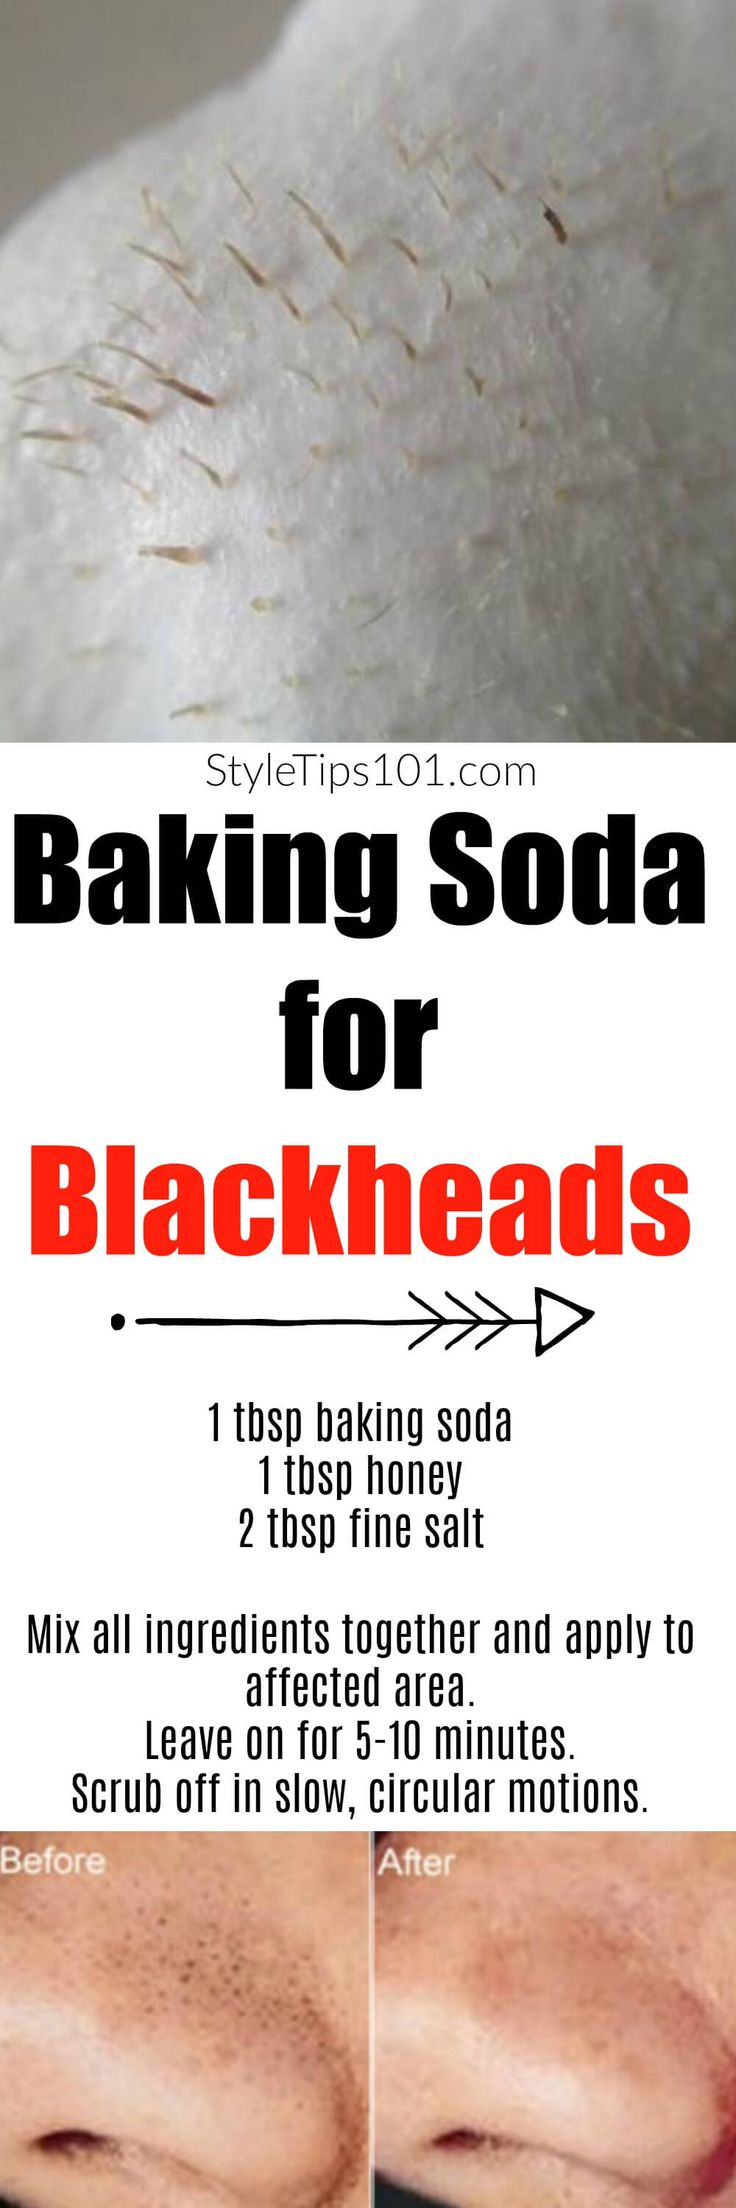 Have you ever used baking soda for blackheads? If not, you're going to love this anti-blackhead mask which is more effective than any other treatment! via @styletips1o1